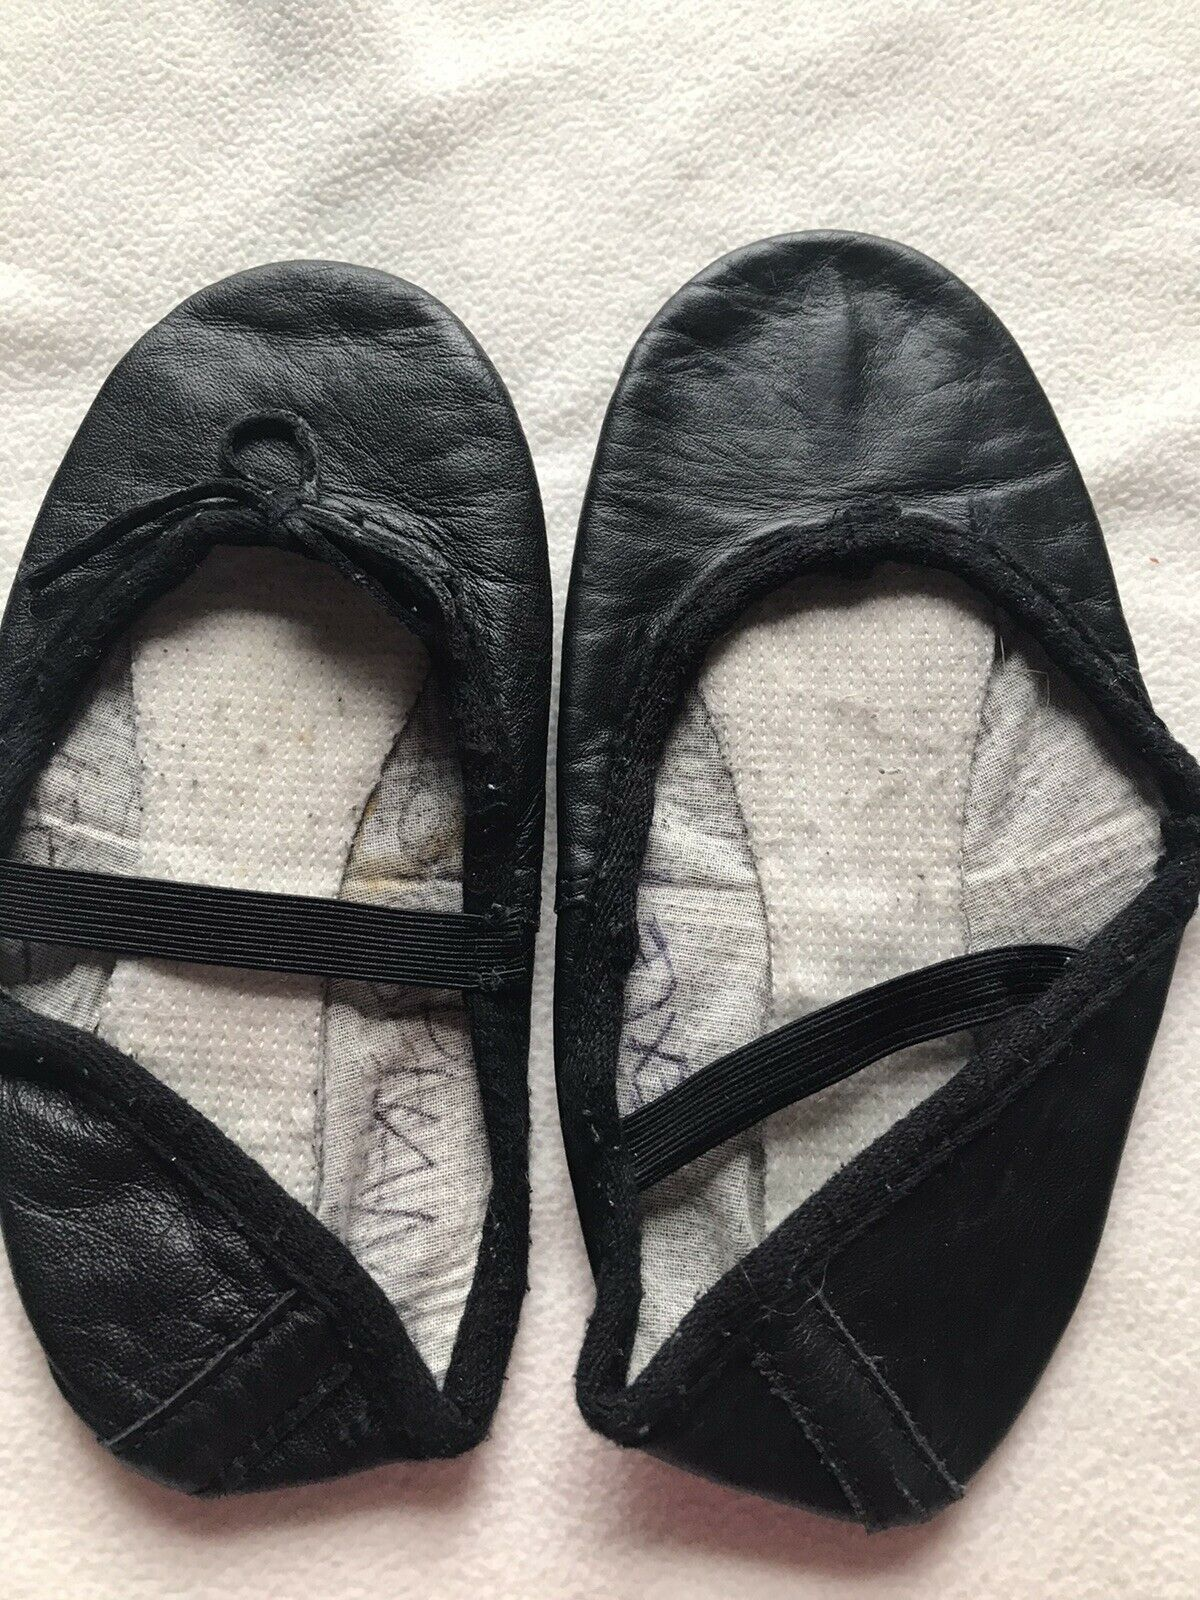 Black Leather Ballet Shoes full sole with attached elastics